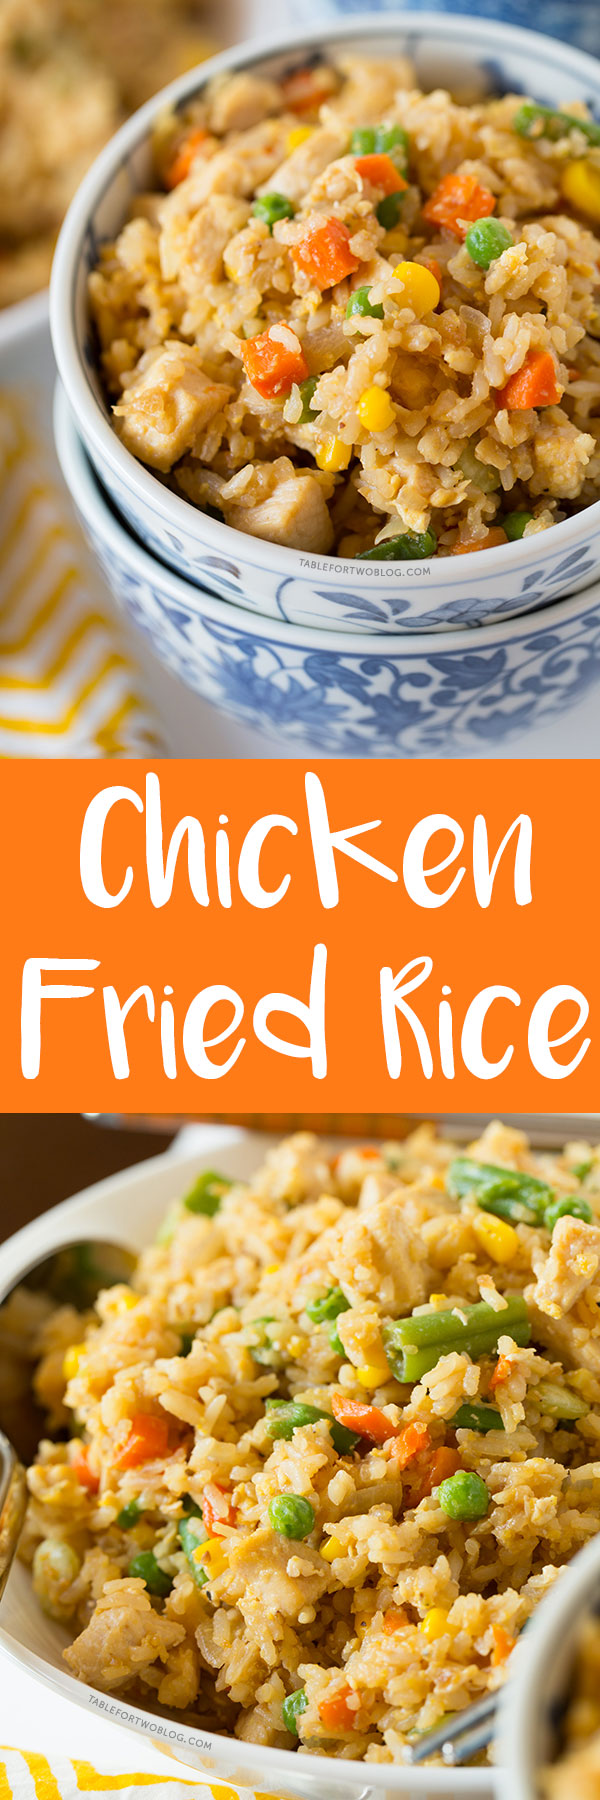 Take-out, fake-out chicken fried rice is so easy to whip up yourself that you won't need to call for take-out!